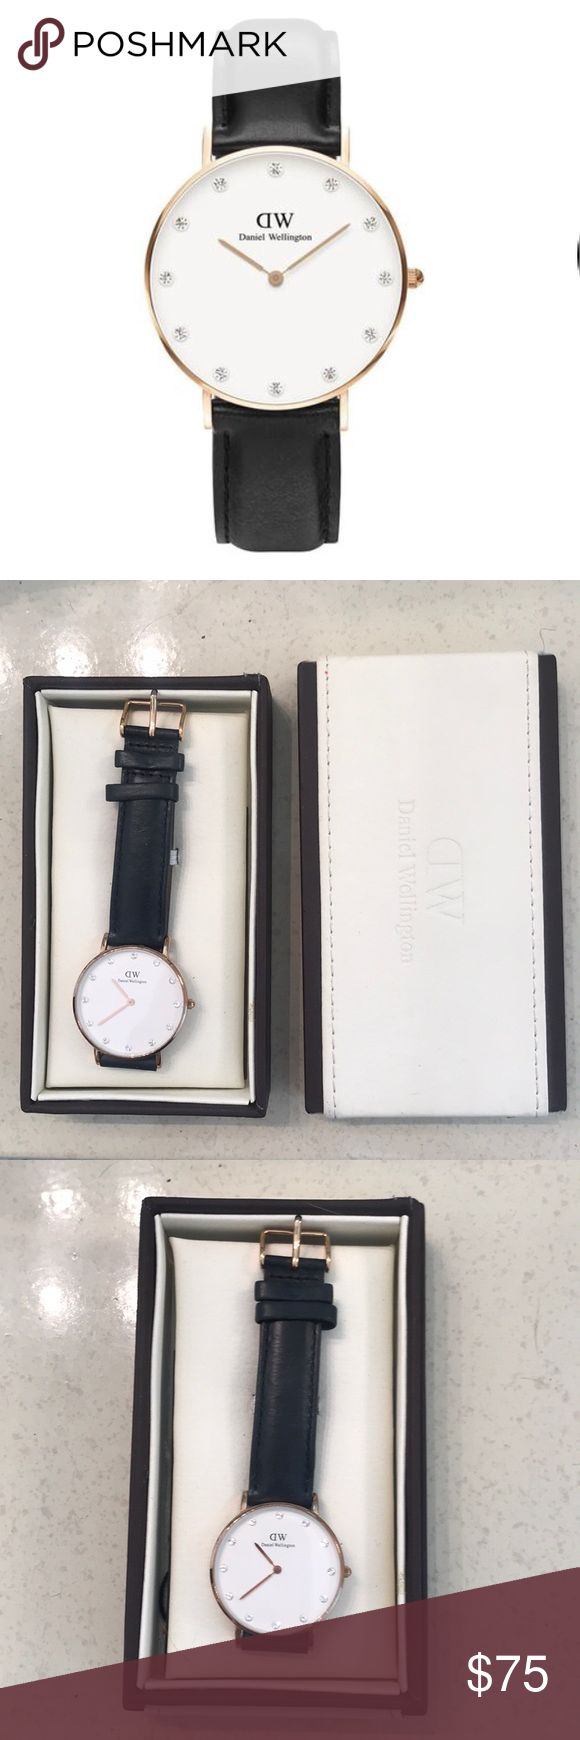 Daniel Wellington Ladies Sheffield Watch A stunning ladies' watch from Daniel Wellington, featuring from an attractive rose gold-tone stainless steel case with a stylish black leather strap. The eggshell white dial is accompanied by rose gold-tone hands and Swarovski crystal hour markers, it also features a scratch resistant mineral crystal lens and is powered with a Japanese-quartz movement.  · 34mm · No trades Daniel Wellington Accessories Watches